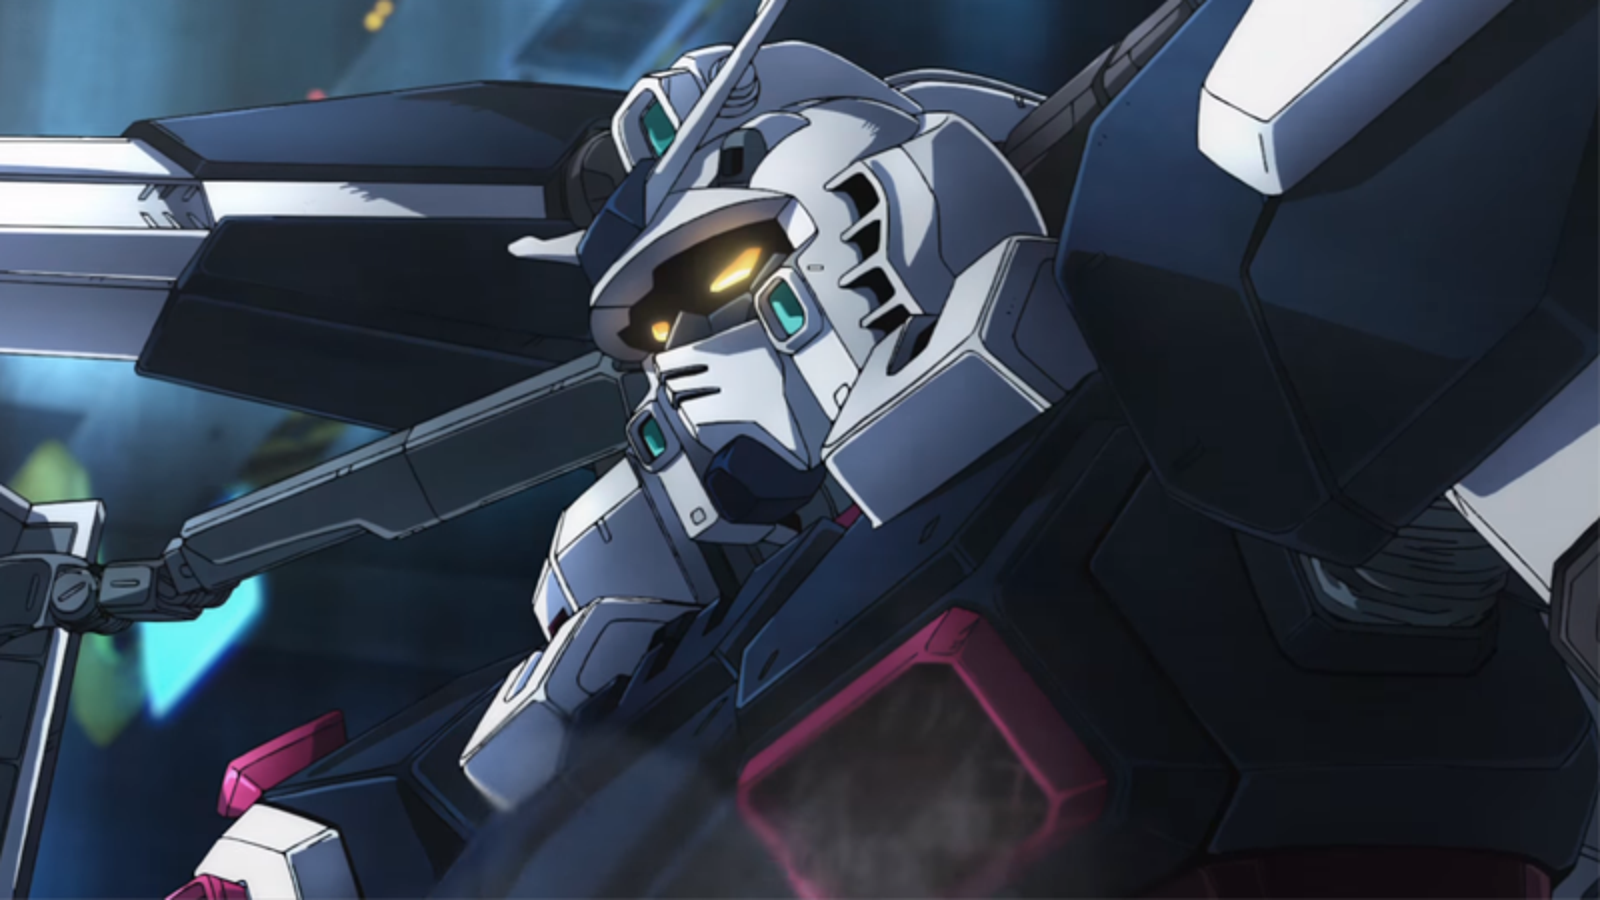 Mobile Suit Gundam Thunderbolt Is Finally Bringing Its Mecha and Jazz to the West